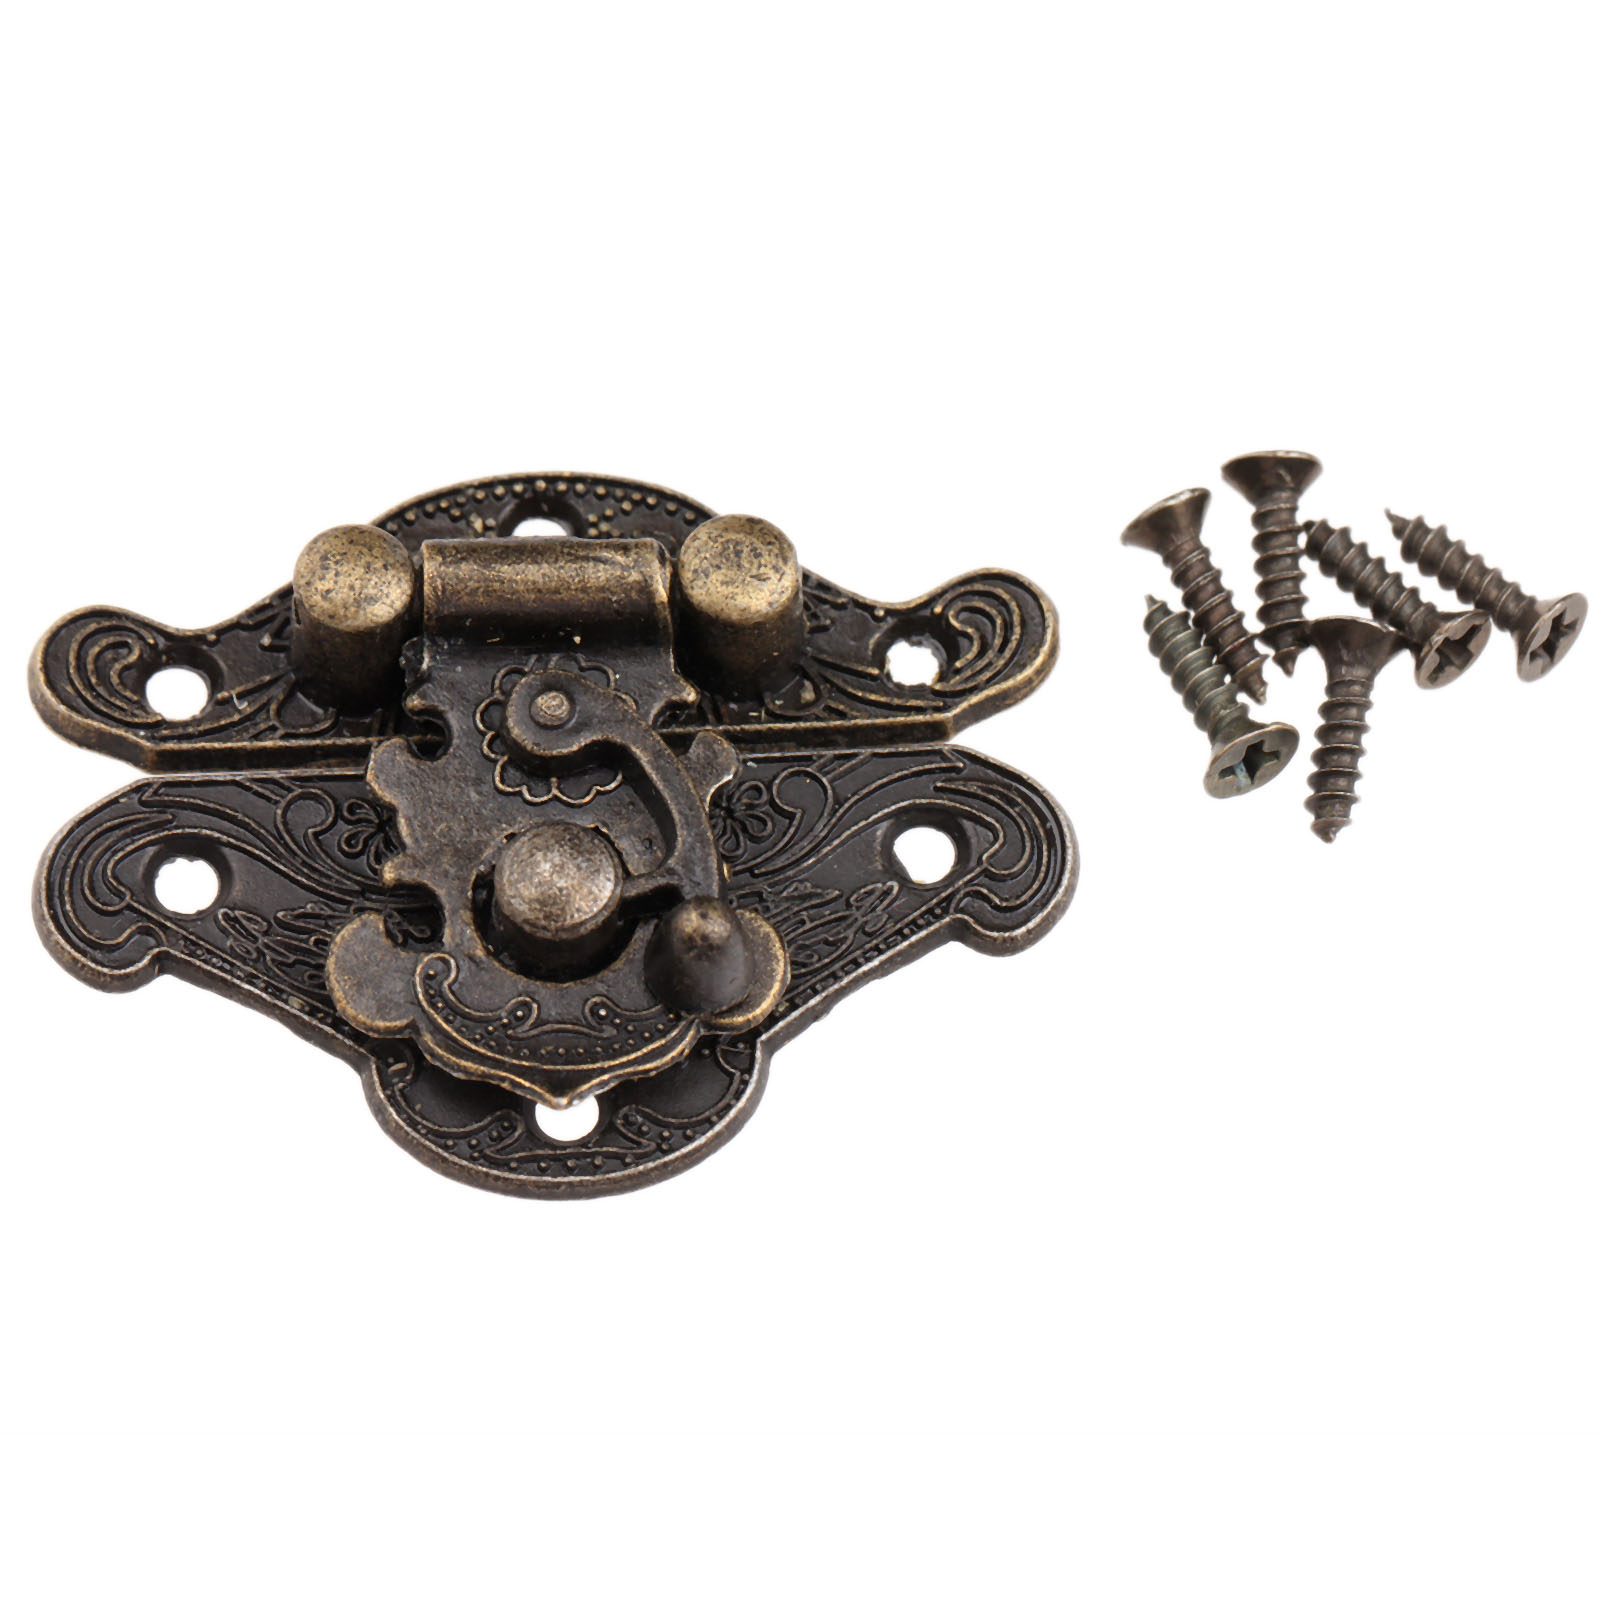 1Pc Antique Bronze Jewelry Wooden Box Hasps Drawer Latches Decorative Brass Suitcases Hasp Latch Buckle Clasp 38x29mm/48x37mm(China (Mainland))